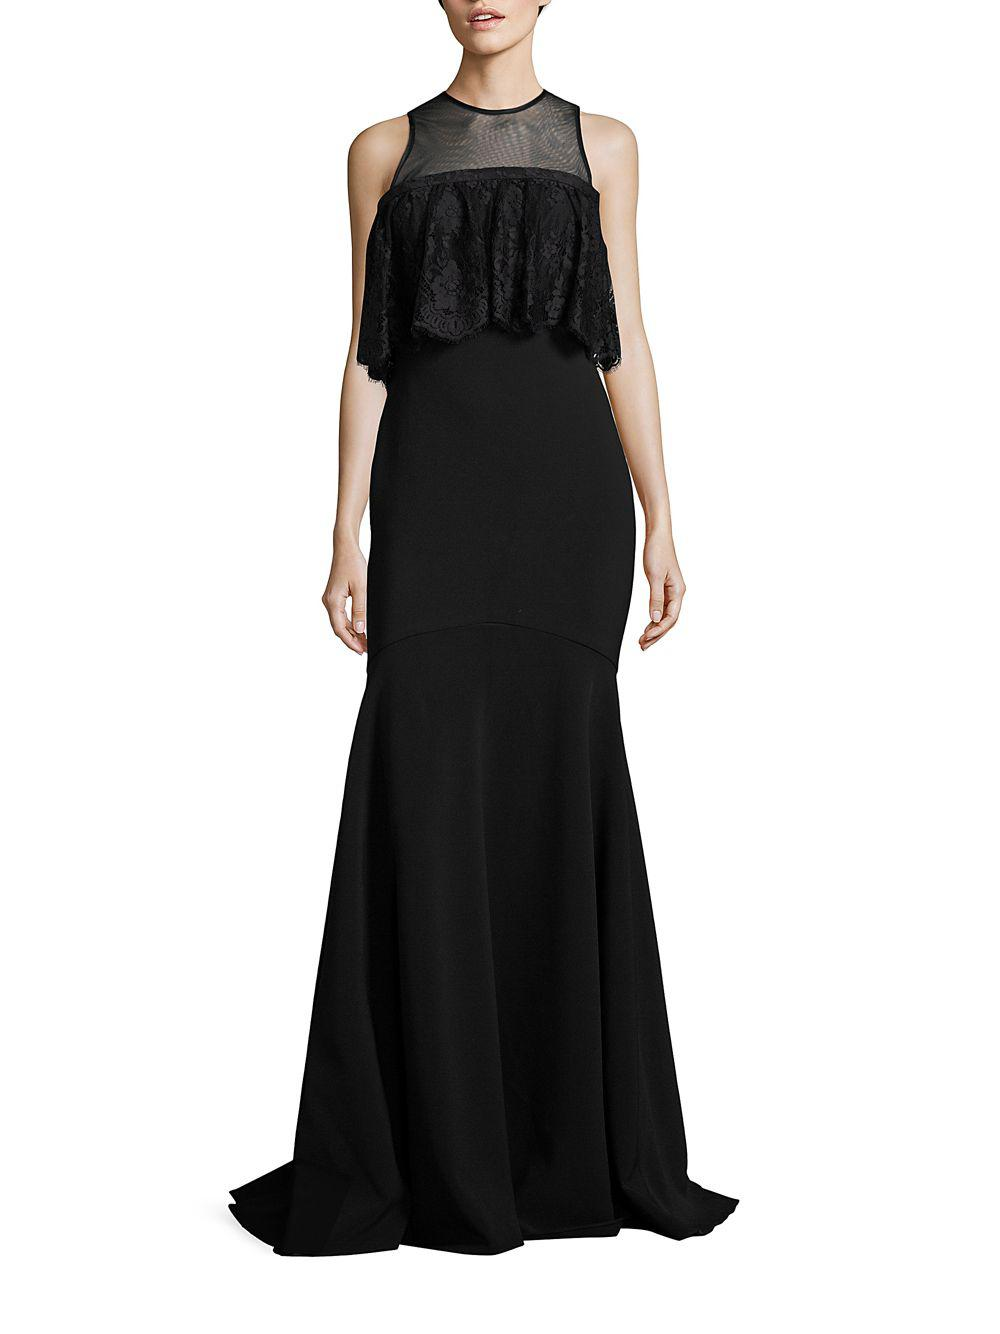 Lyst - Theia Ruffled Lace Trumpet Gown in Black - Save ...